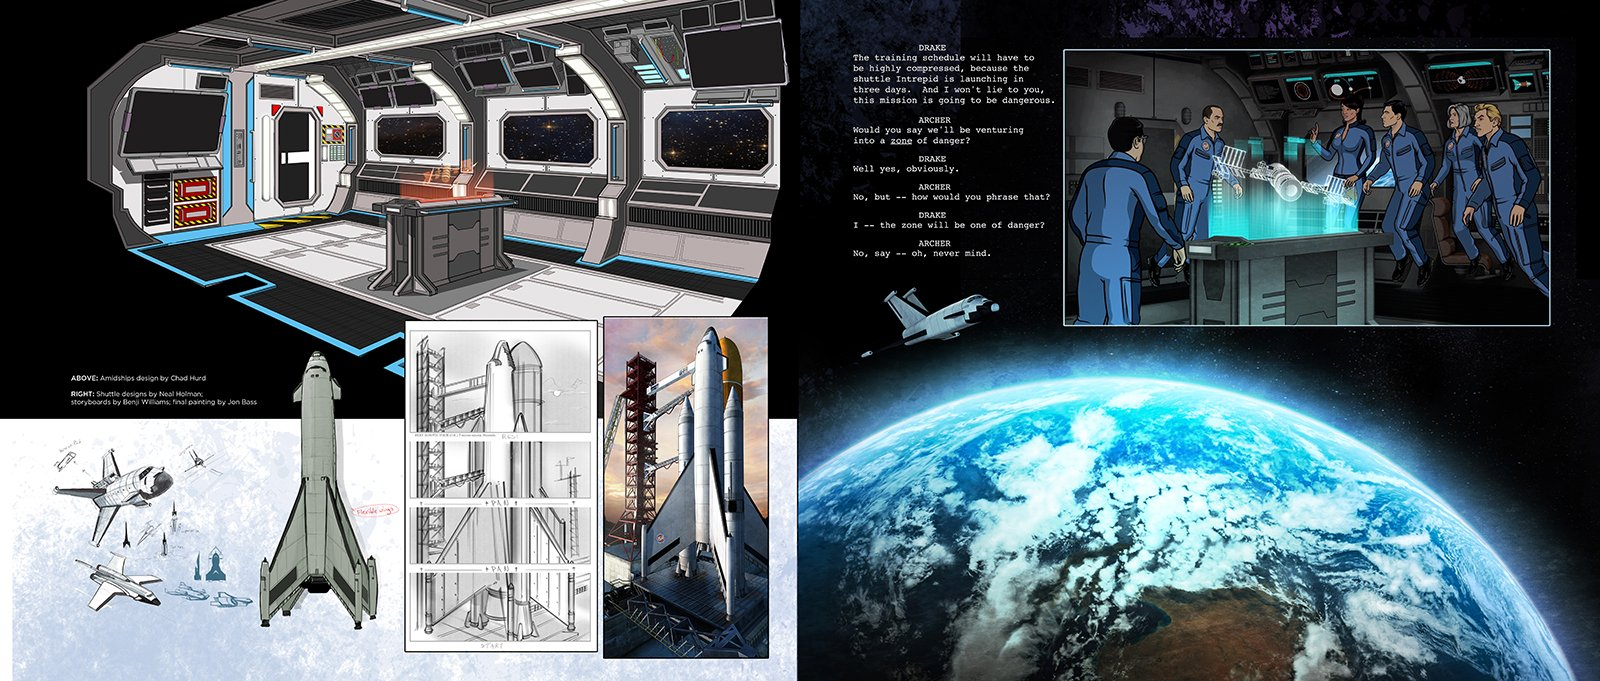 Archer background art development - a page from the book.